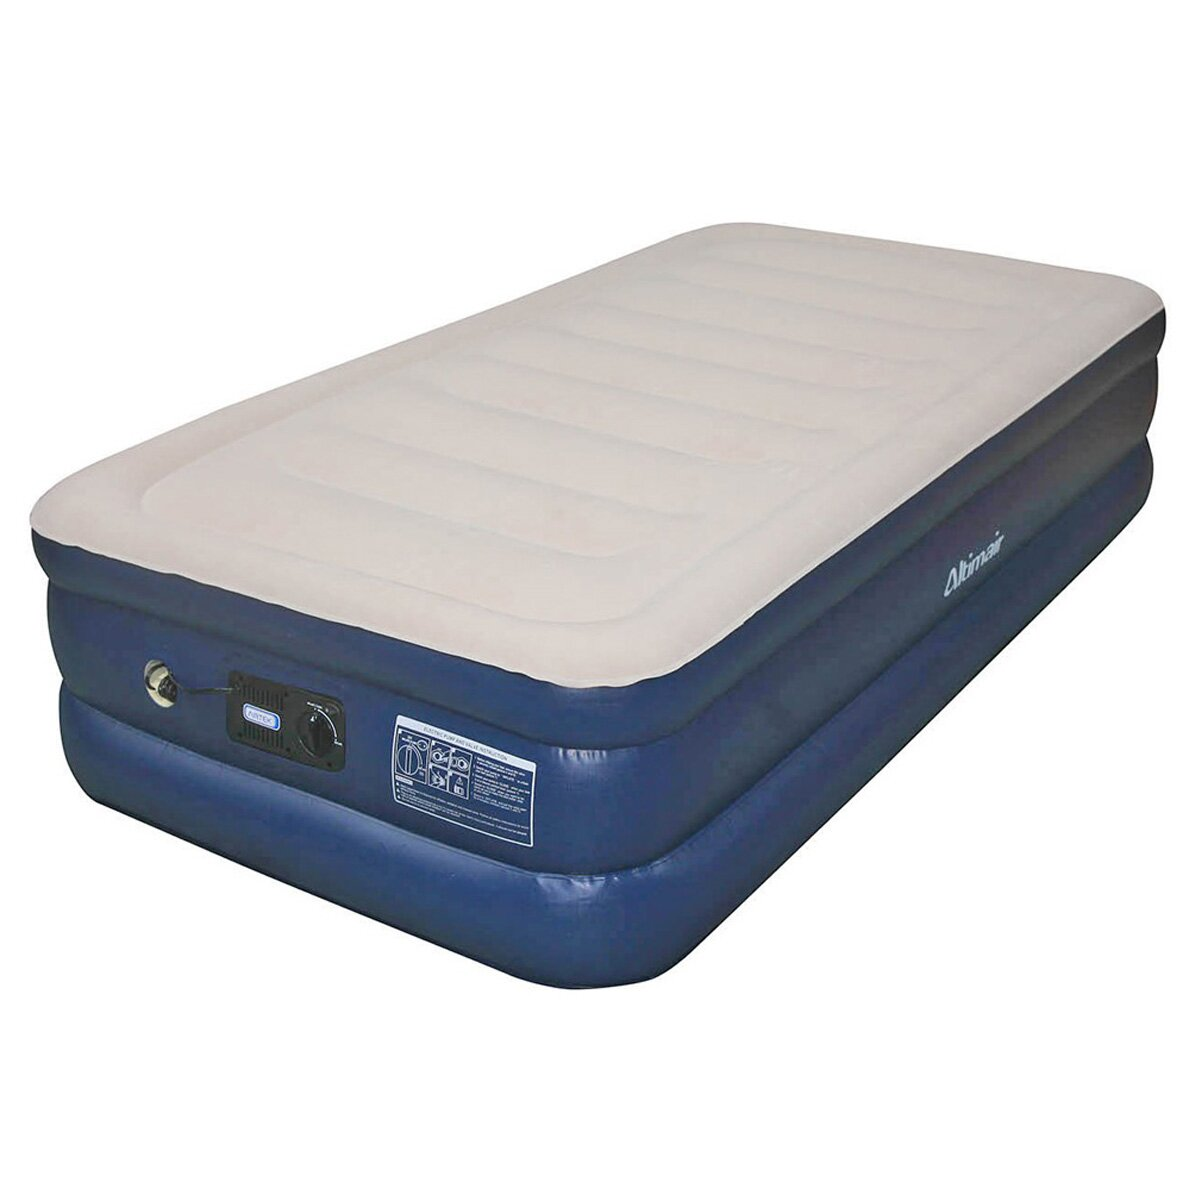 airtek keystone 18 raised air mattress with built in pump. Black Bedroom Furniture Sets. Home Design Ideas